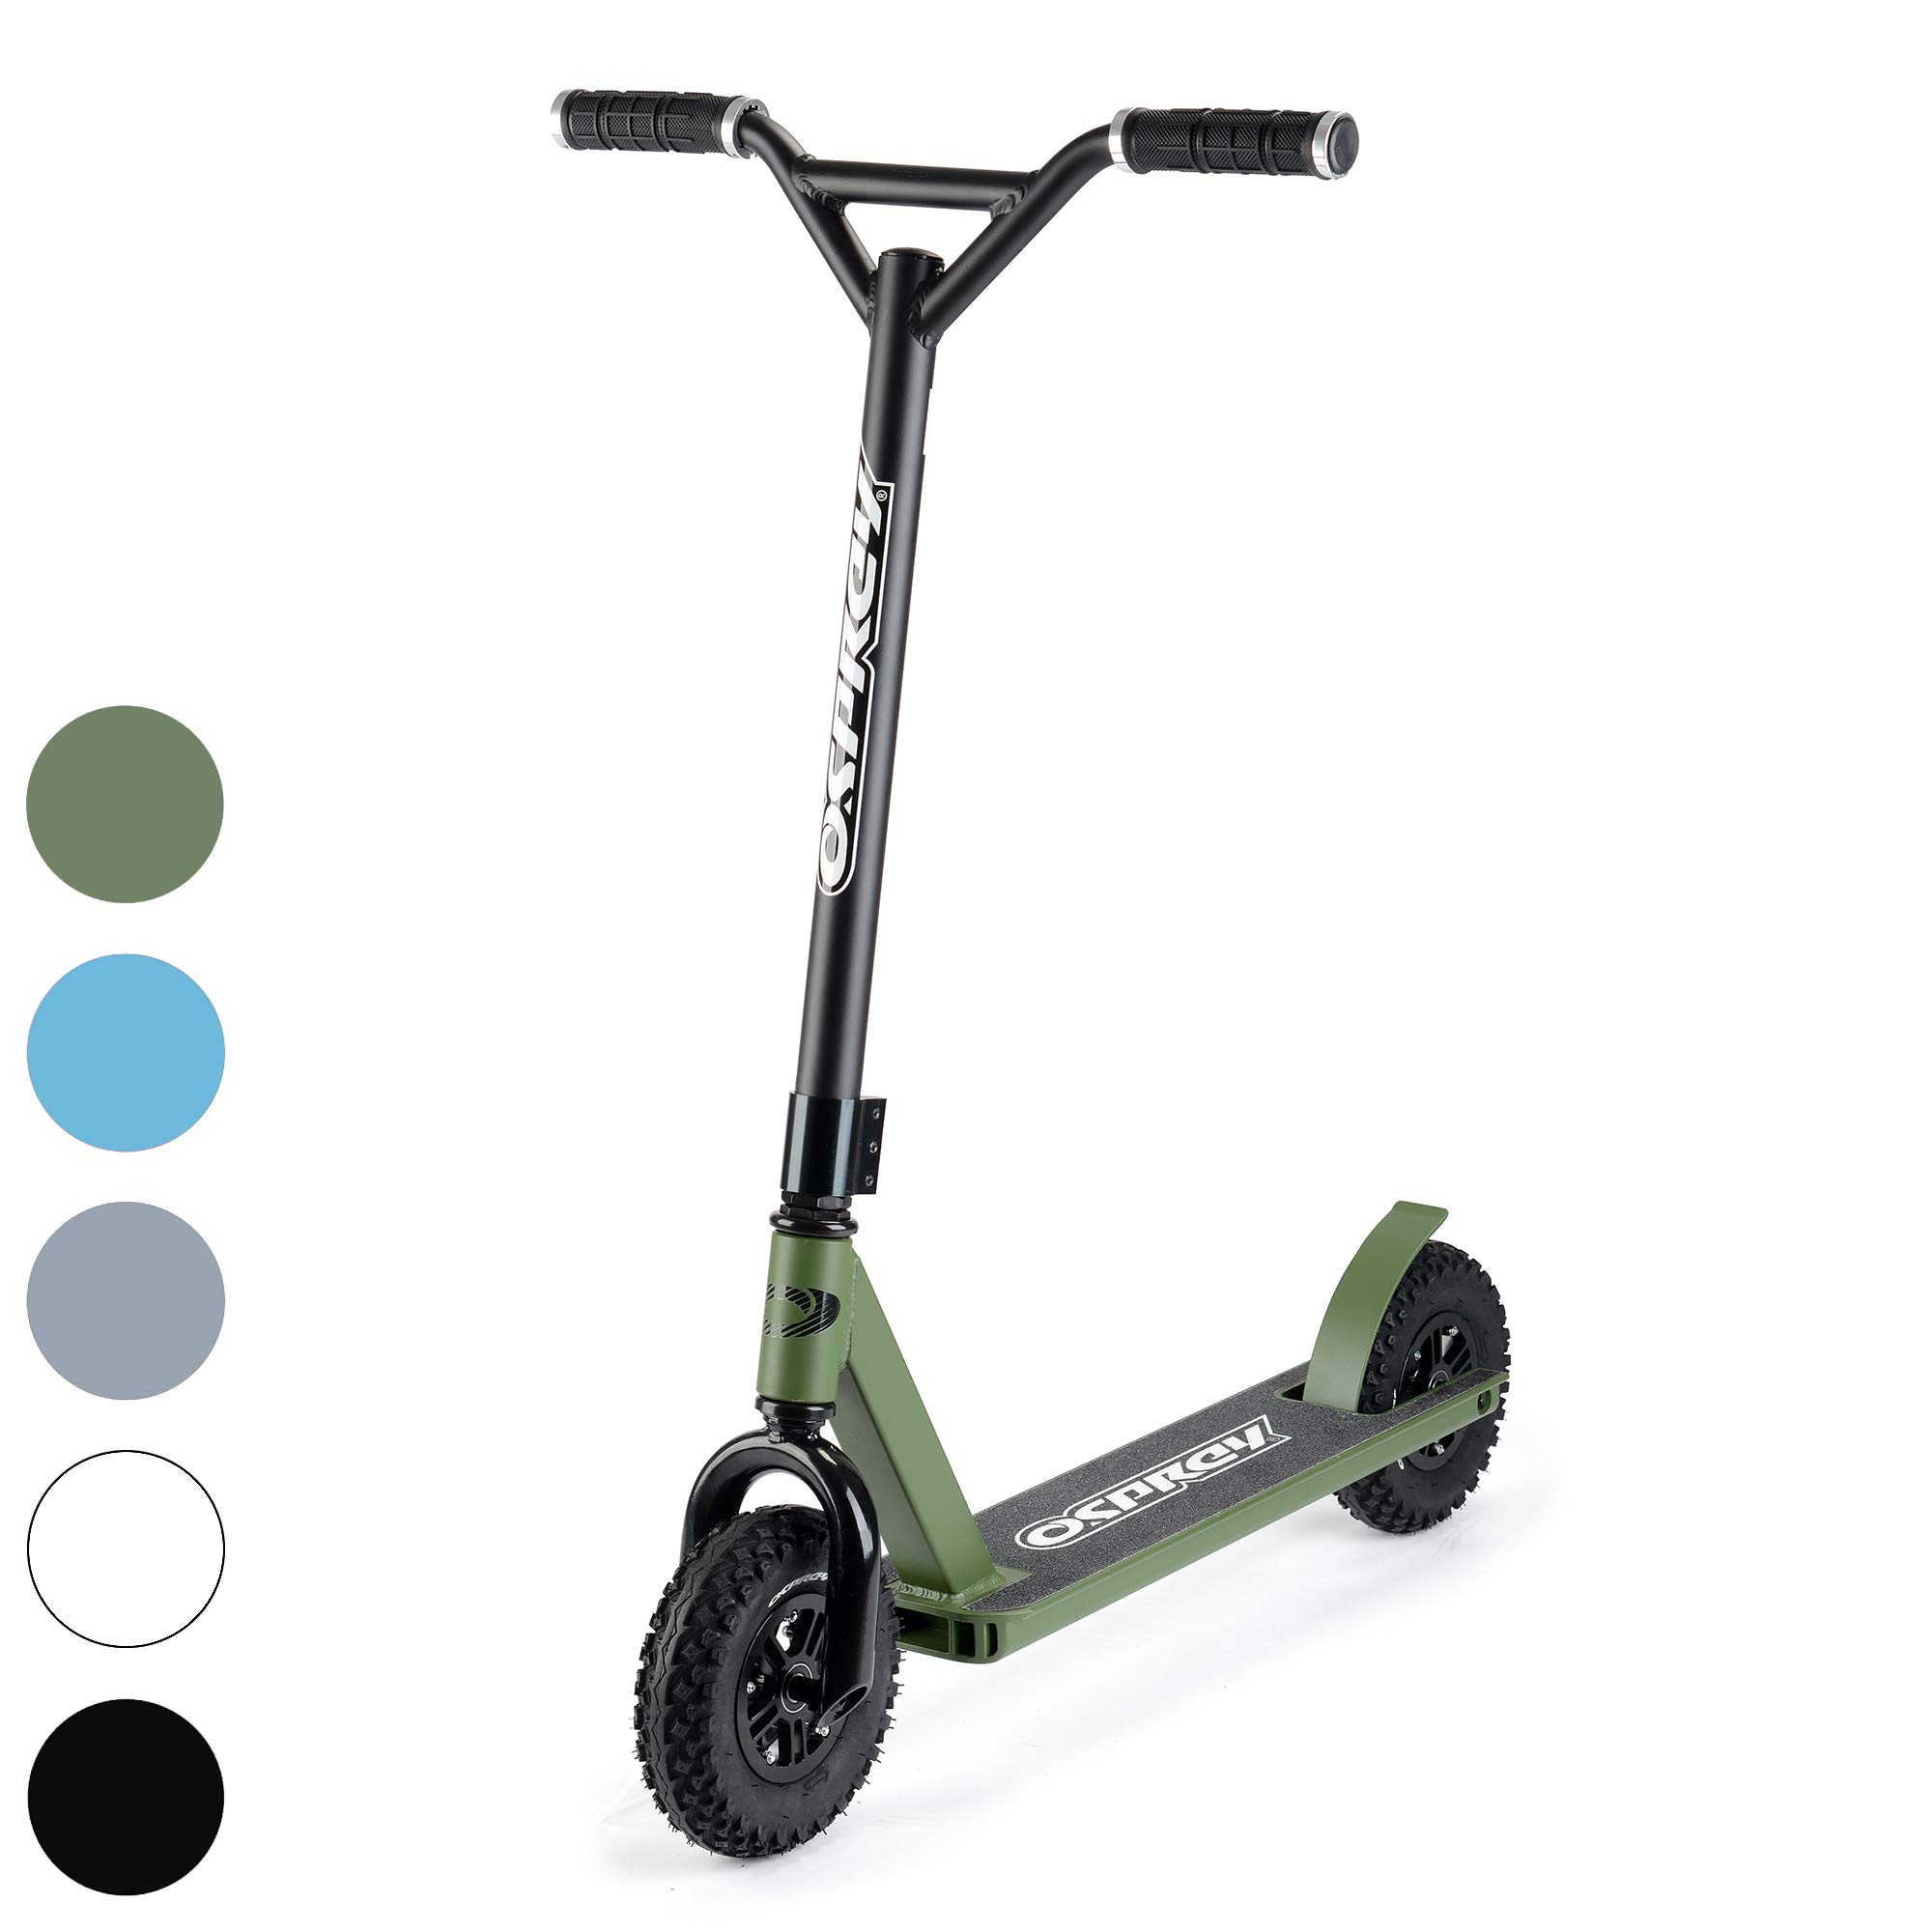 Osprey Dirt Scooter with Off Road All Terrain Pneumatic Trail Tires - NATO Green - Offroad Scooter for Adults or Kids by Osprey